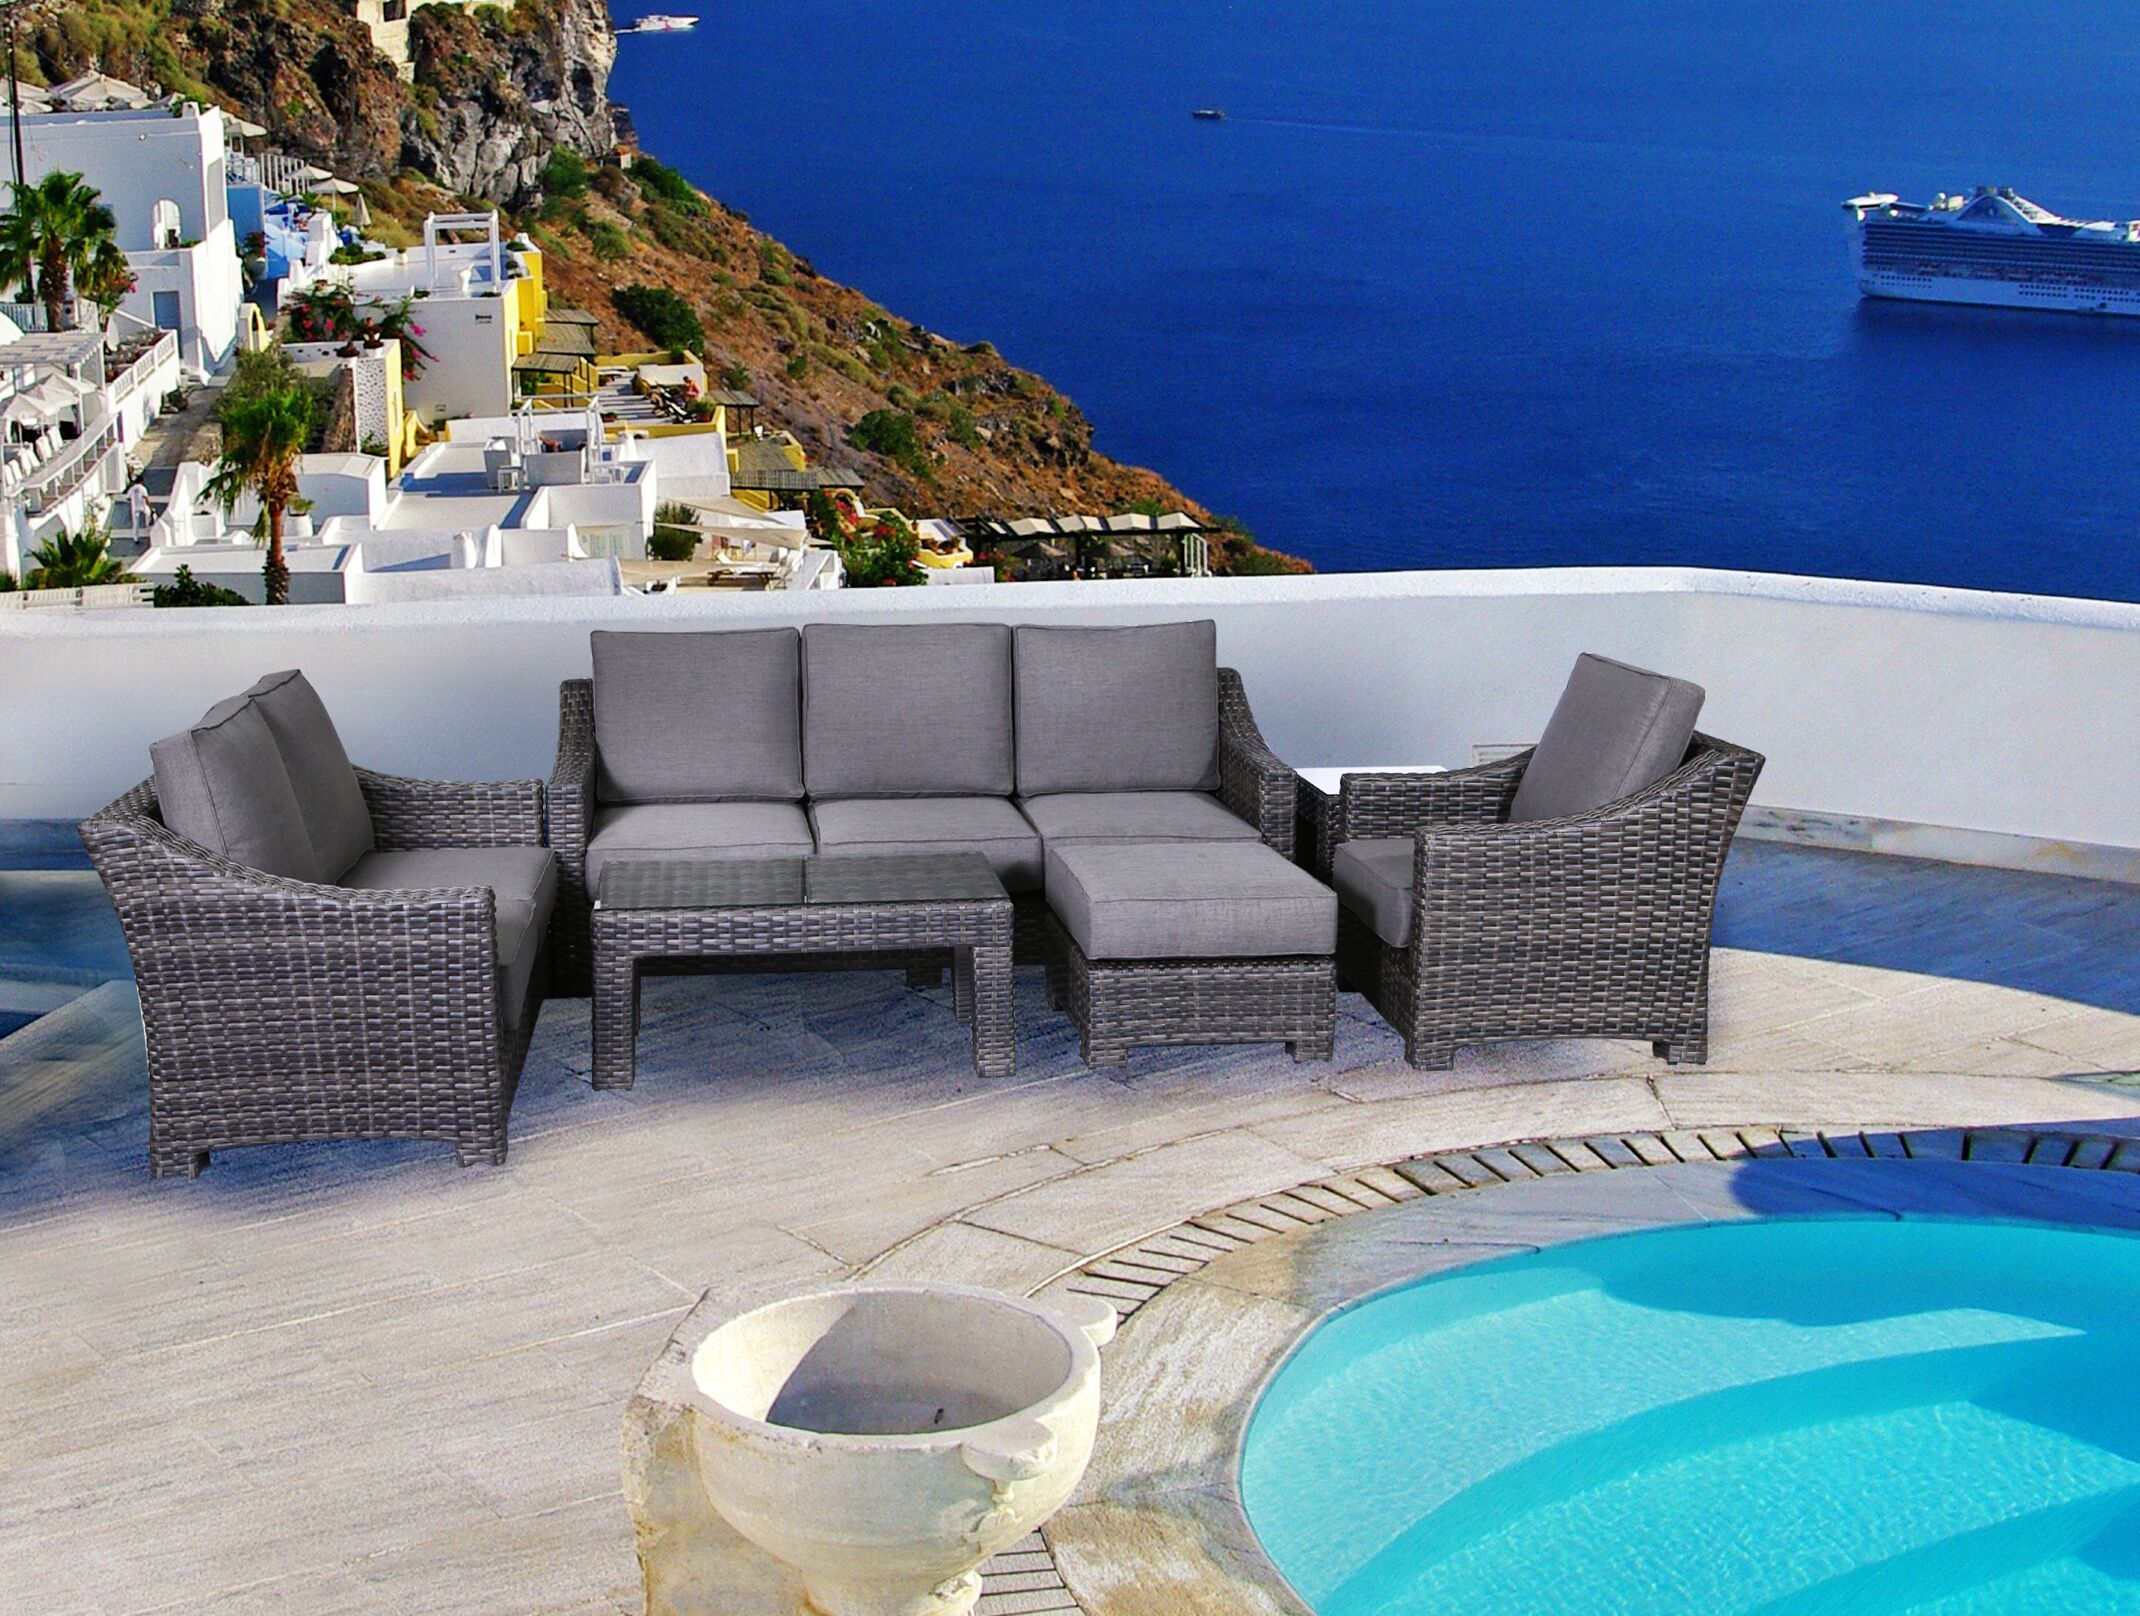 Donley 4 Piece Sofa Set with Cushions